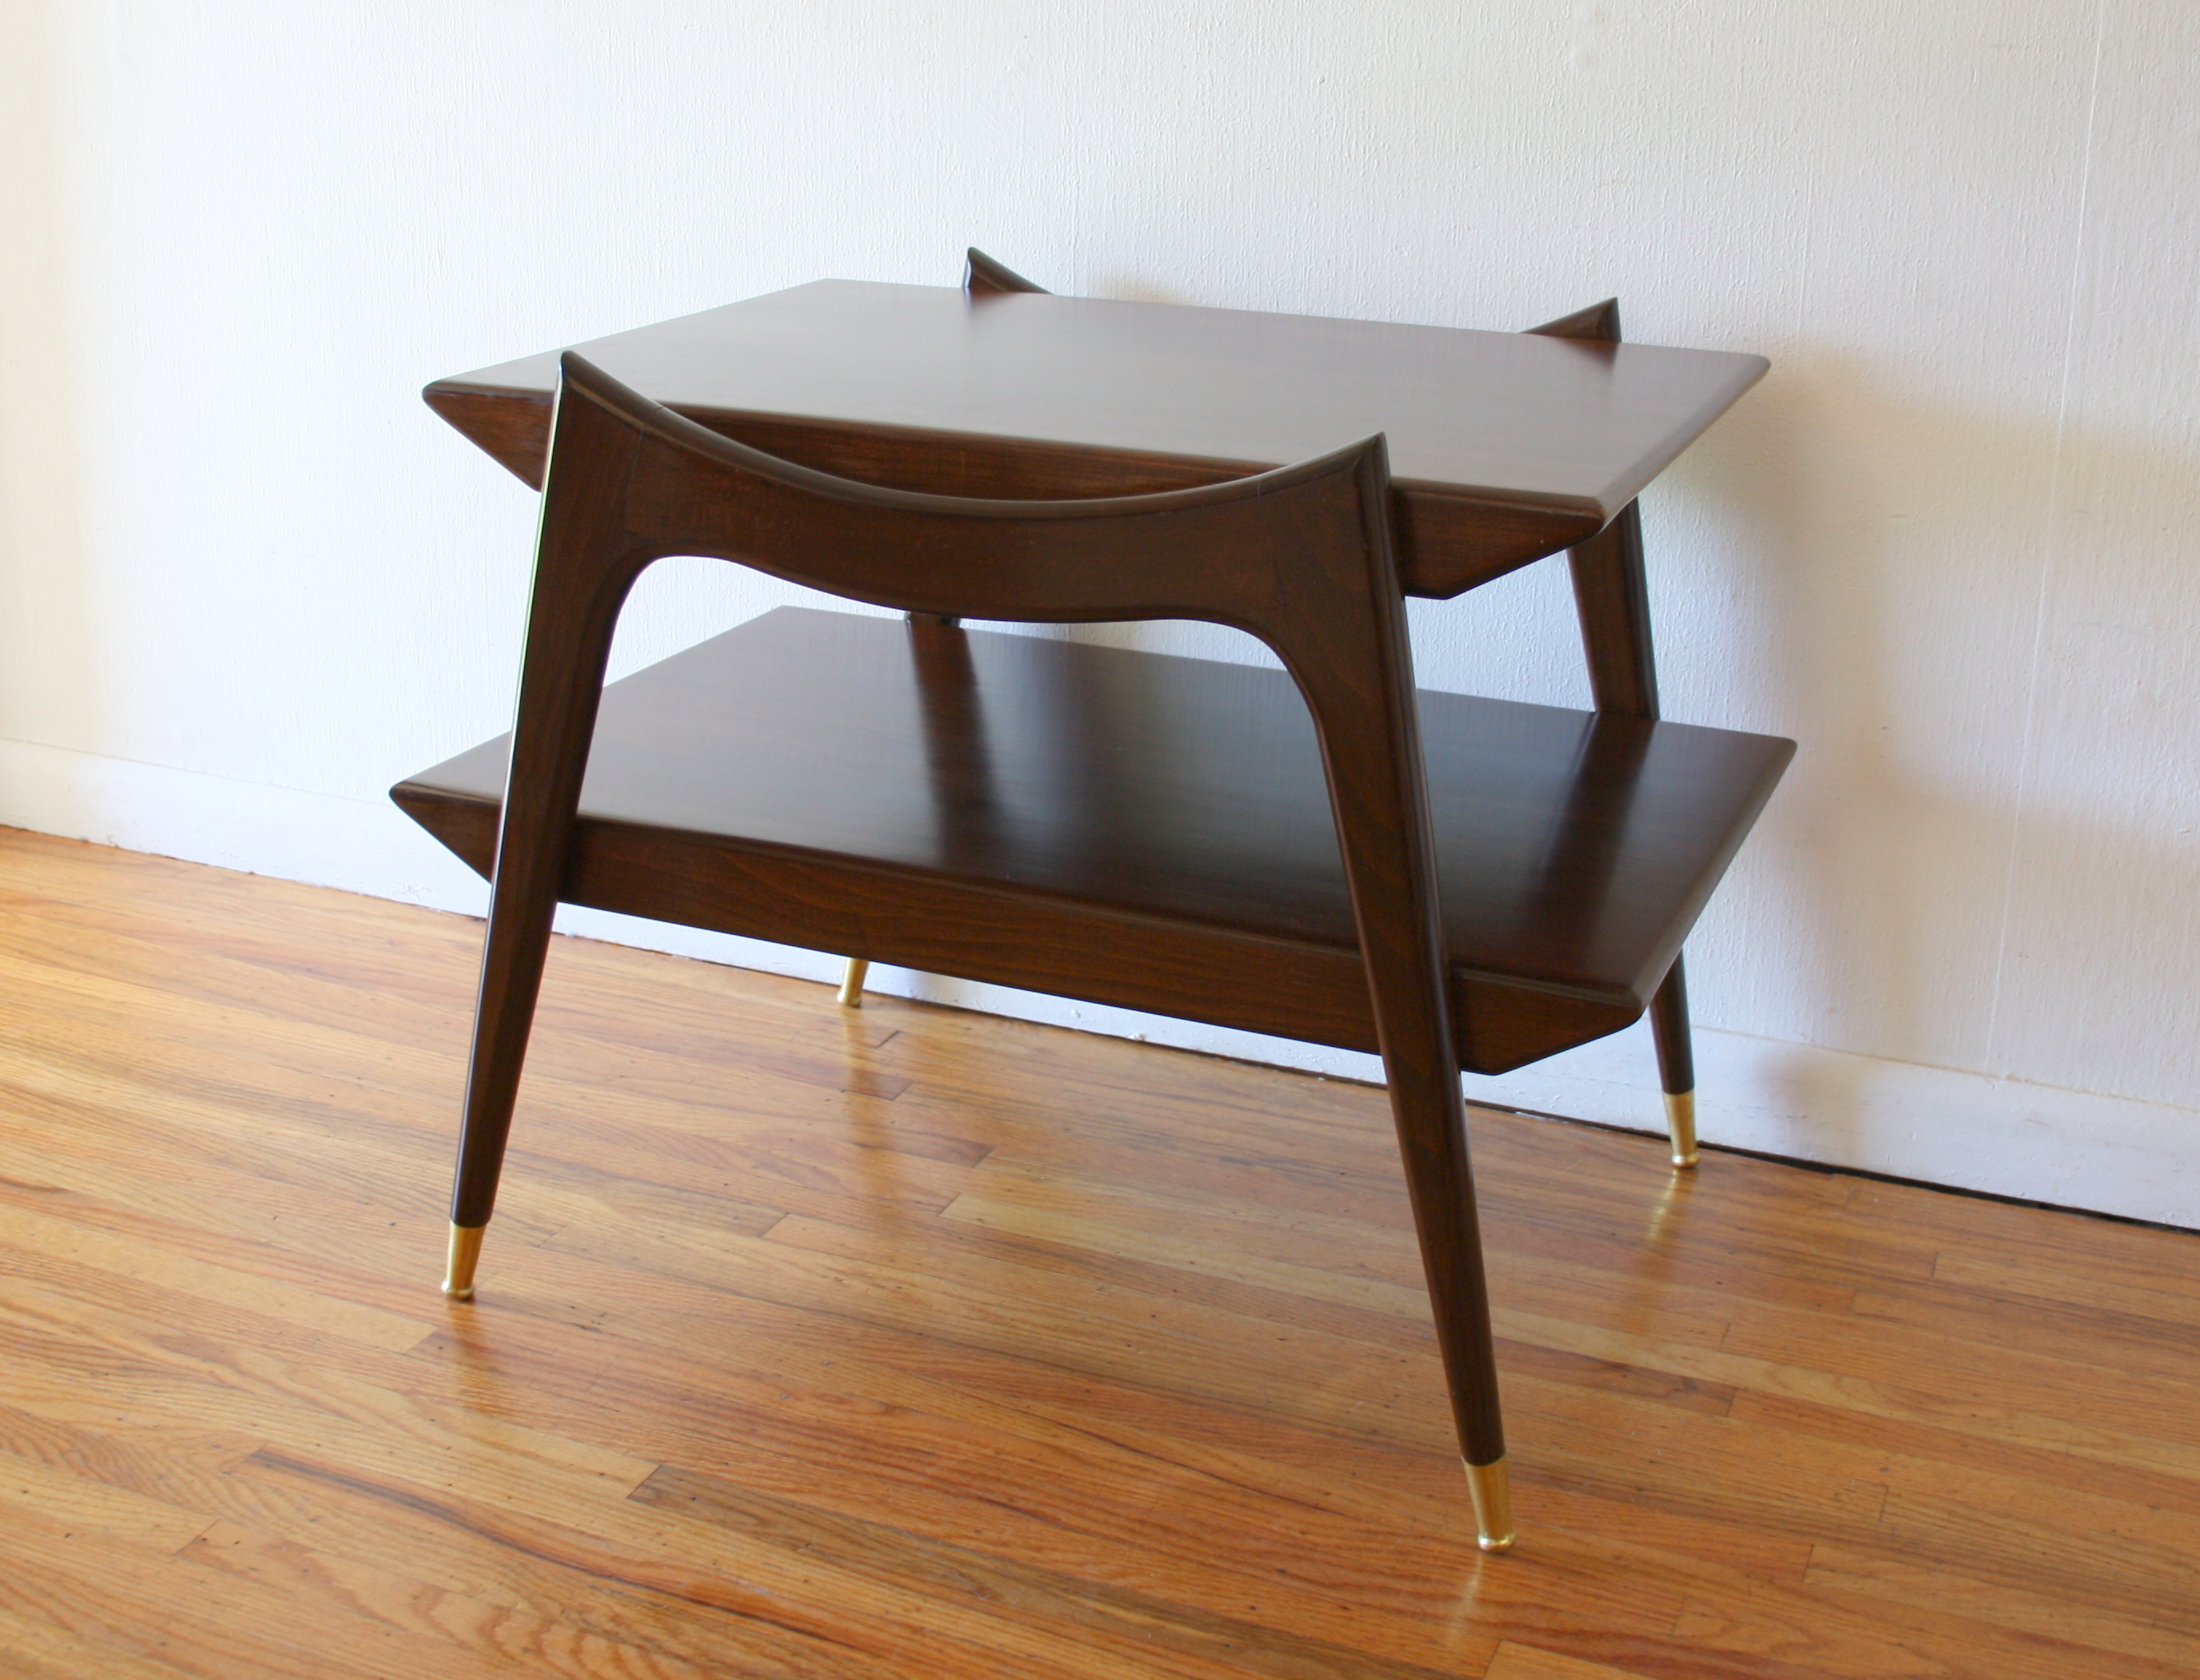 Mcm side table with angled sides 2